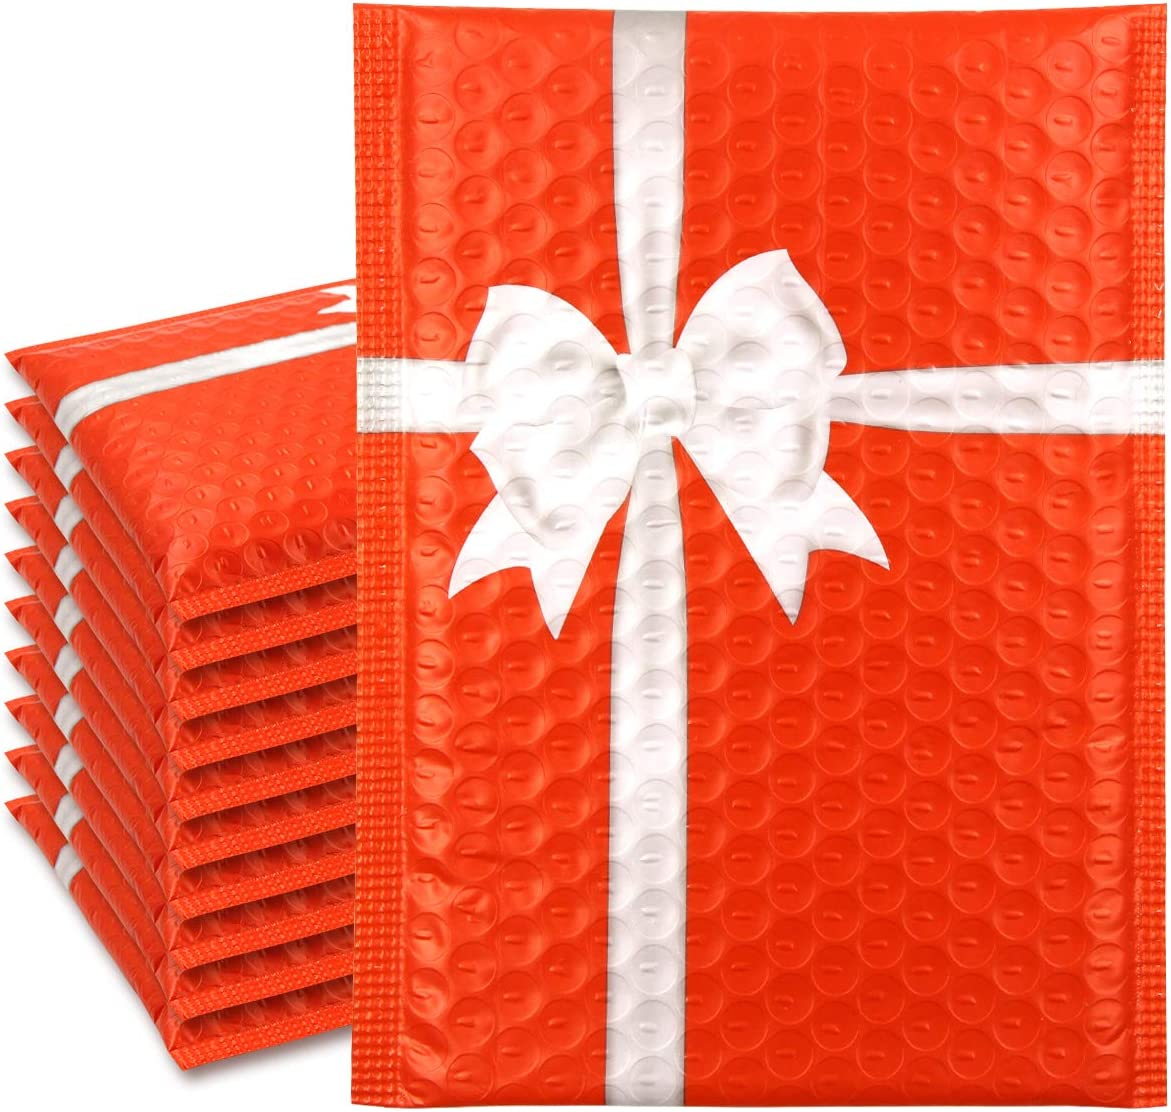 Gift Complete Free Shipping Mailing Envelopes Bags Sales of SALE items from new works Poly Mail